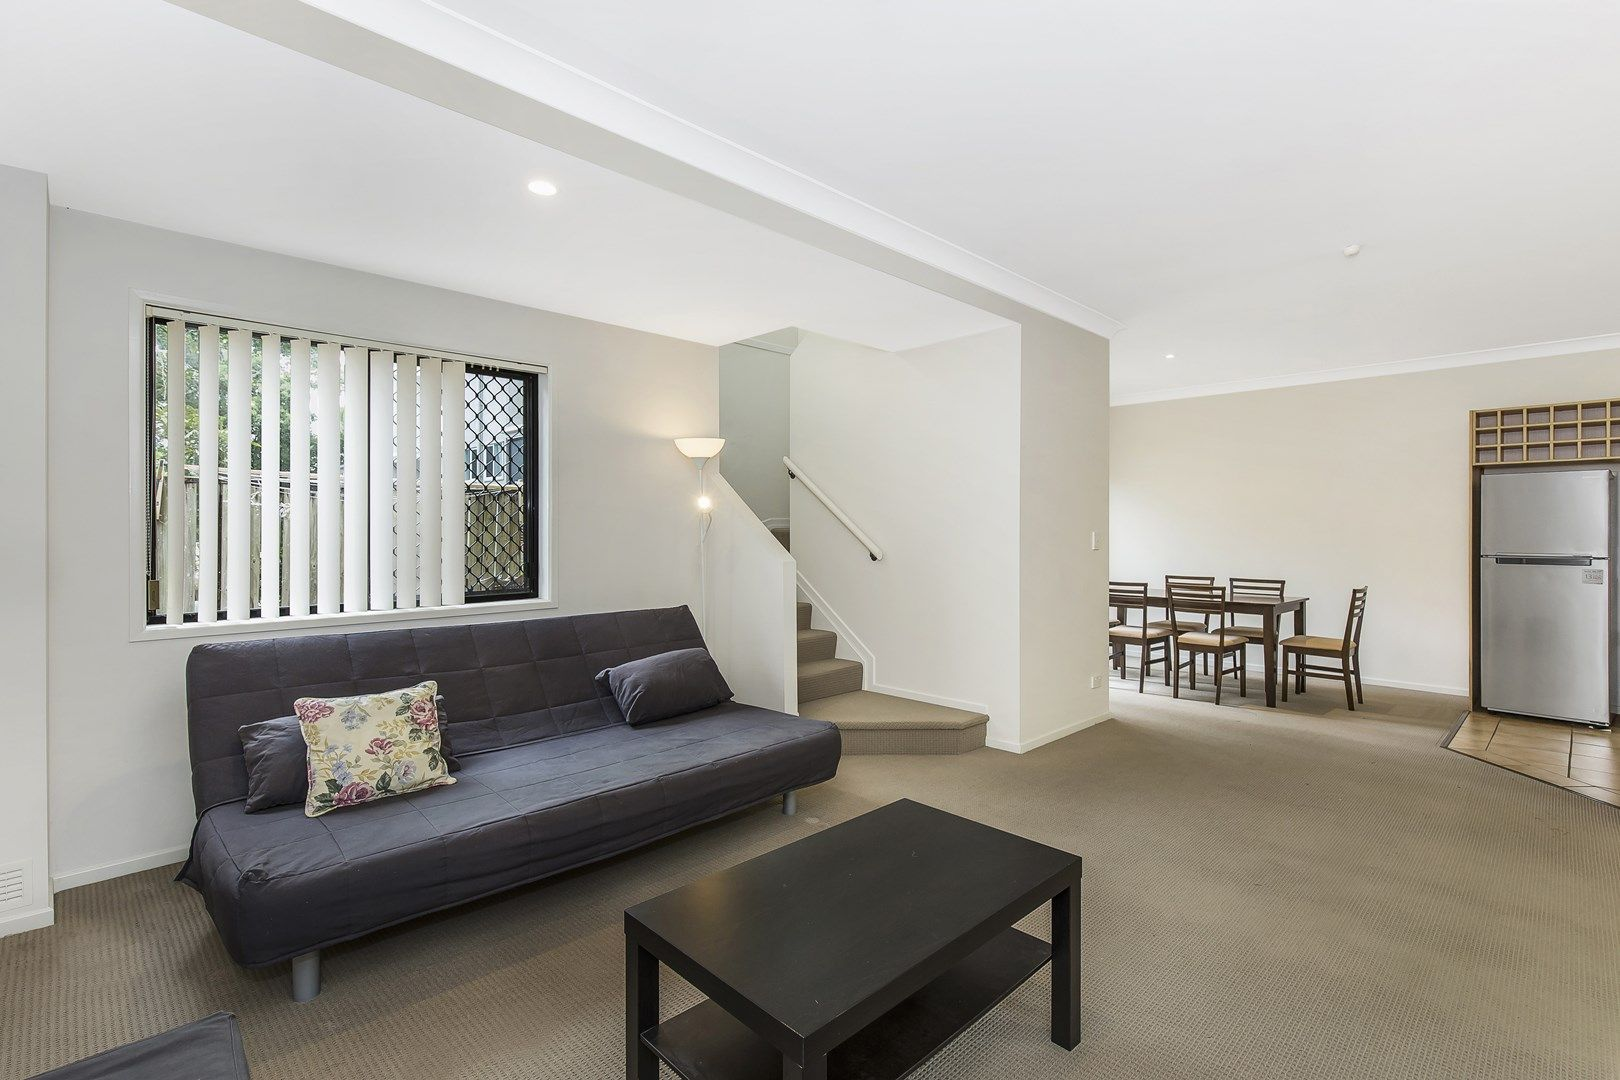 7/122 Central Avenue, Indooroopilly QLD 4068, Image 0